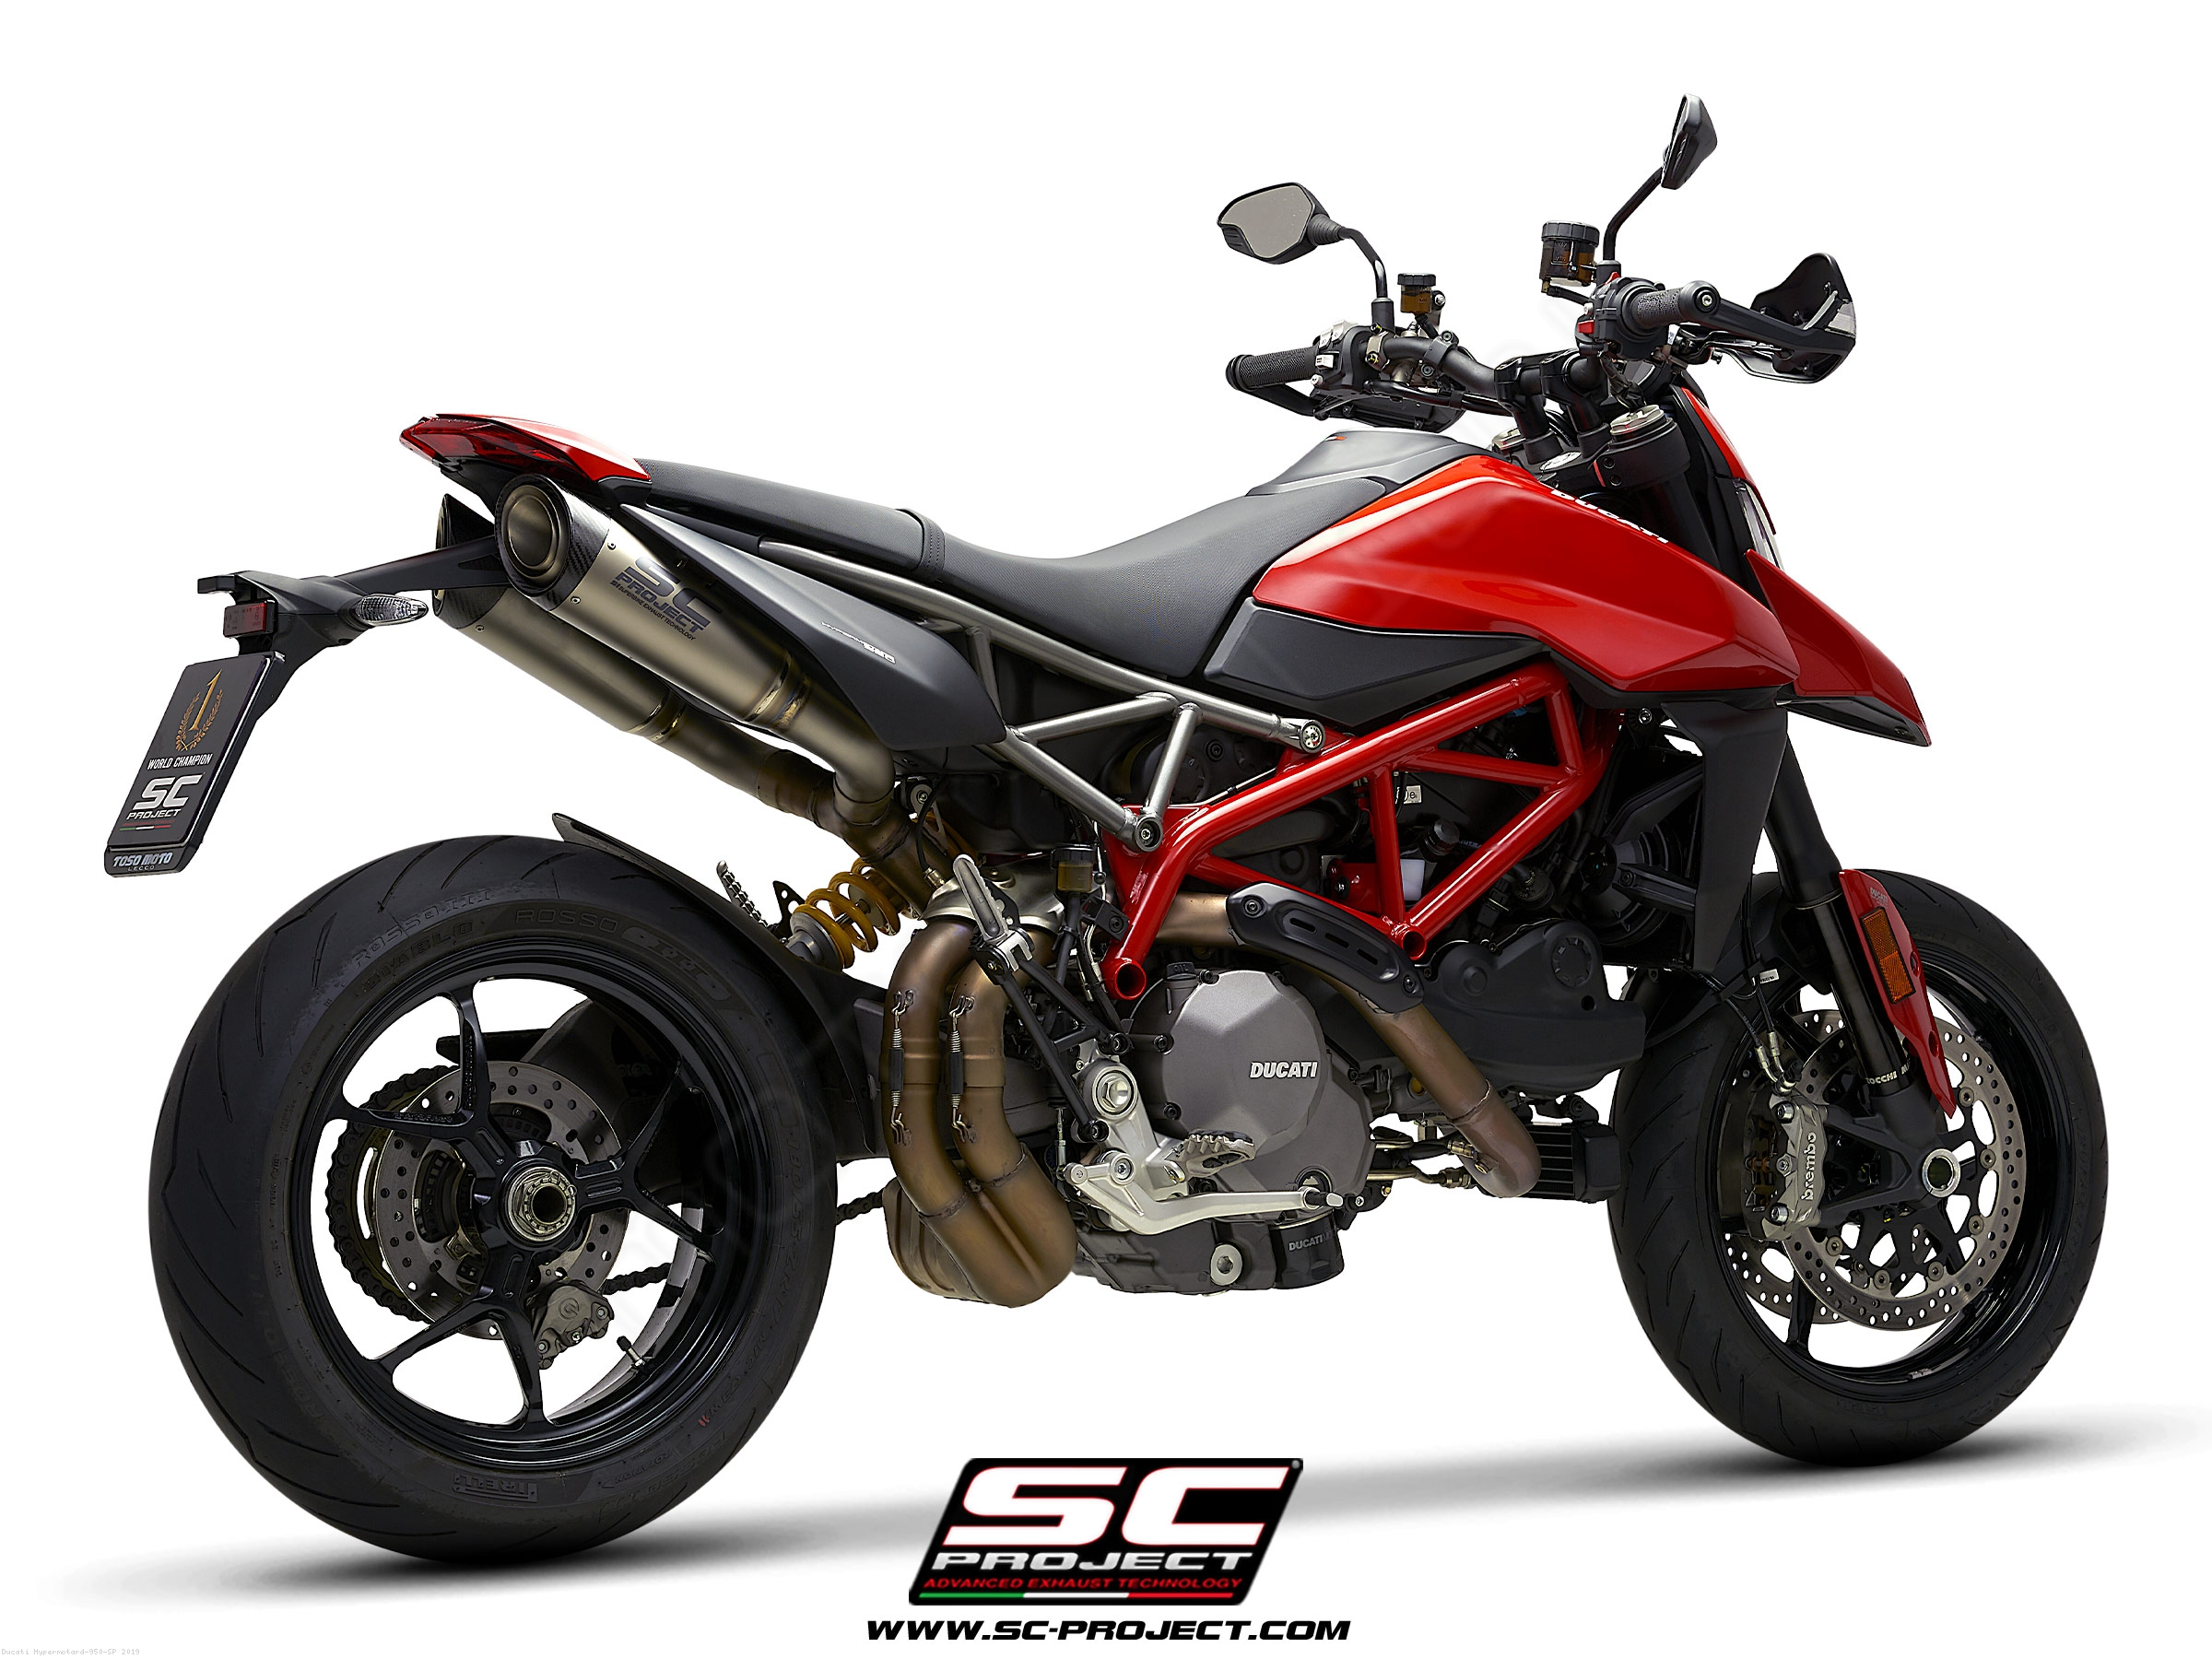 S1 Exhaust by SC-Project Ducati / Hypermotard 950 SP / 2019